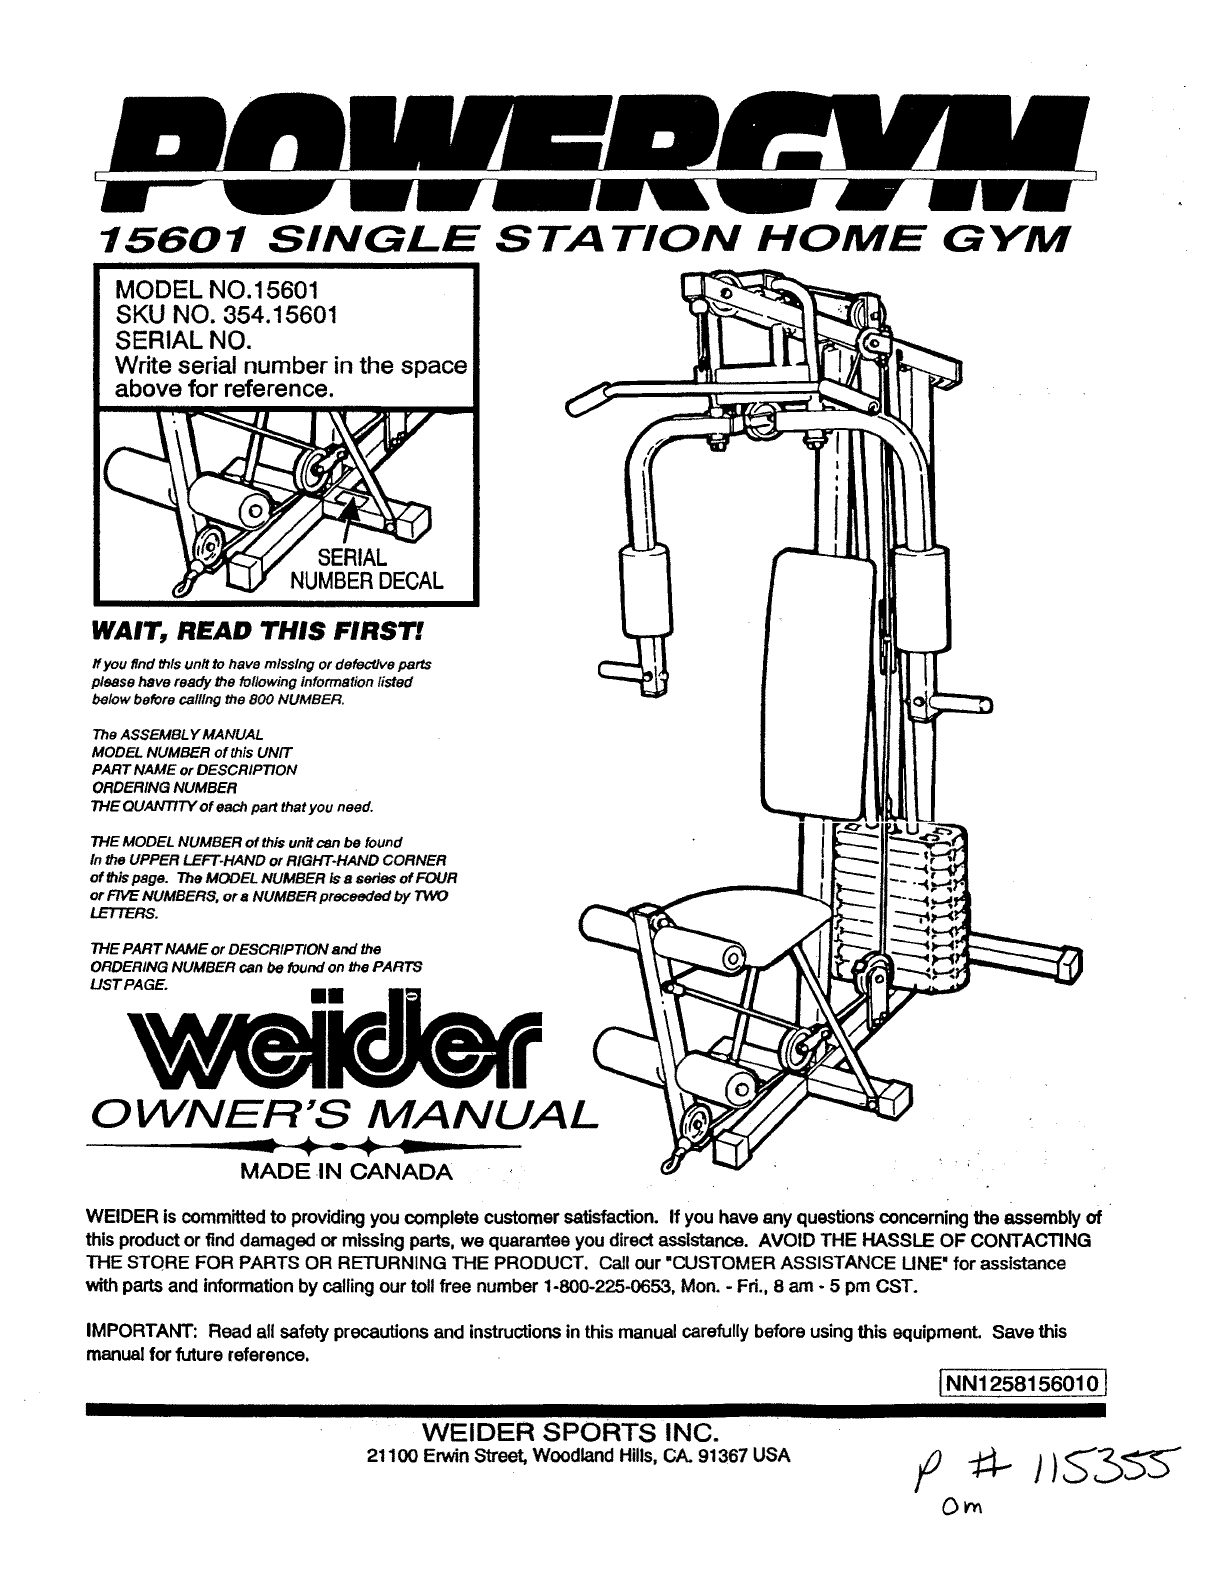 Simplified Electrical One Manual Guide